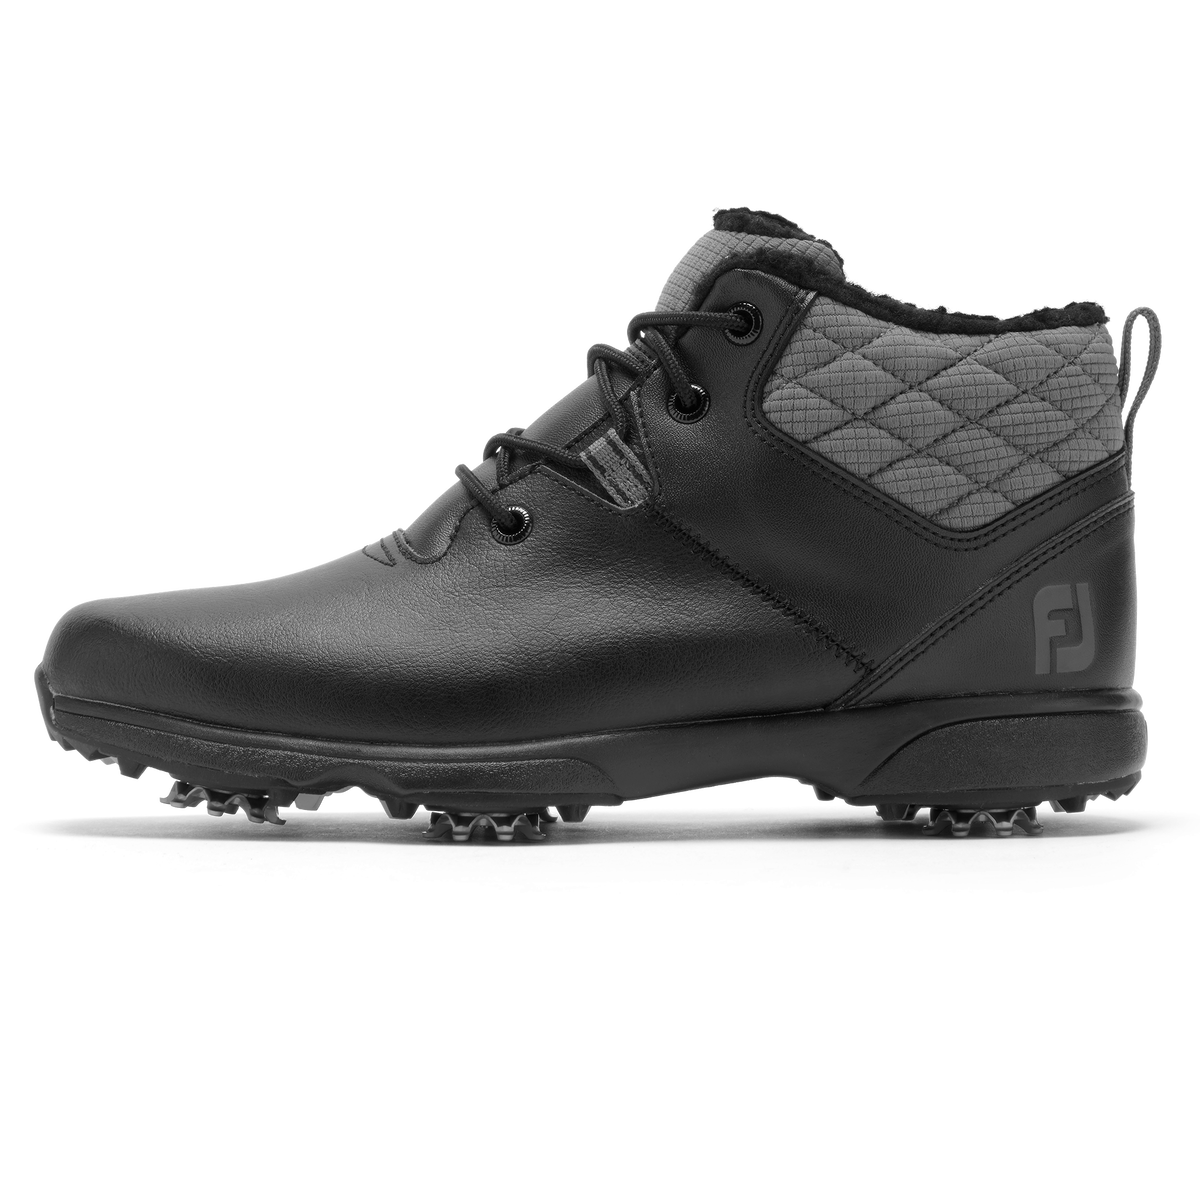 FJ Winter Boot Women